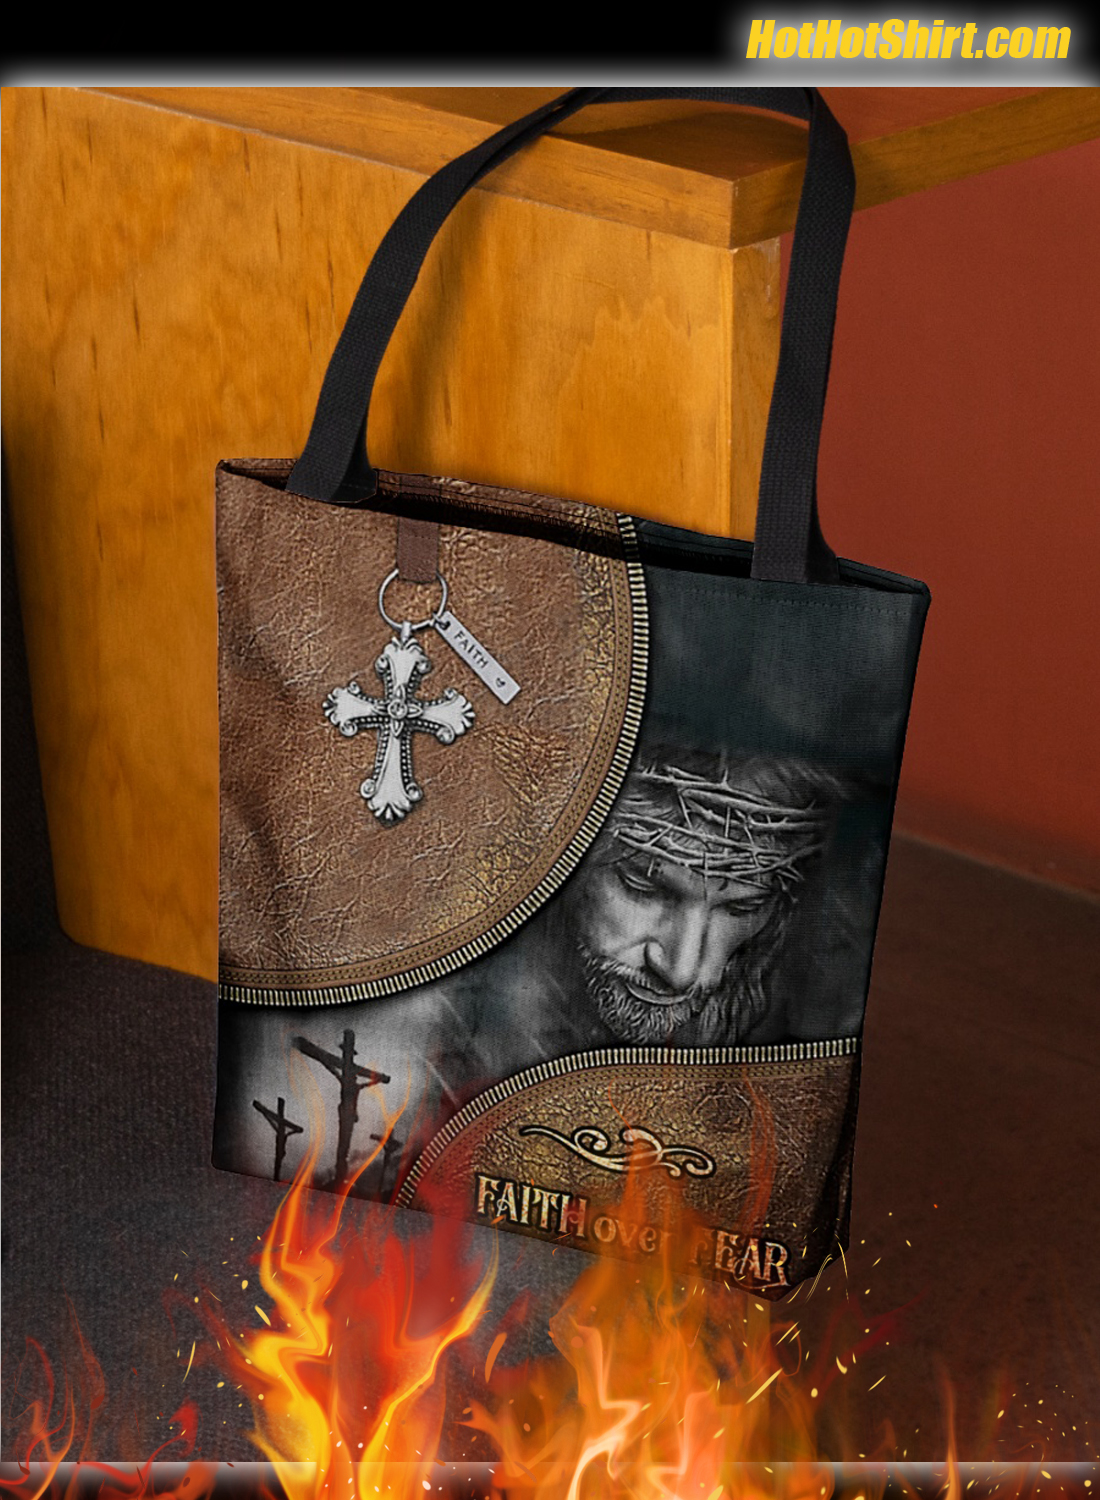 Fate Over Fear Tote Bag 2